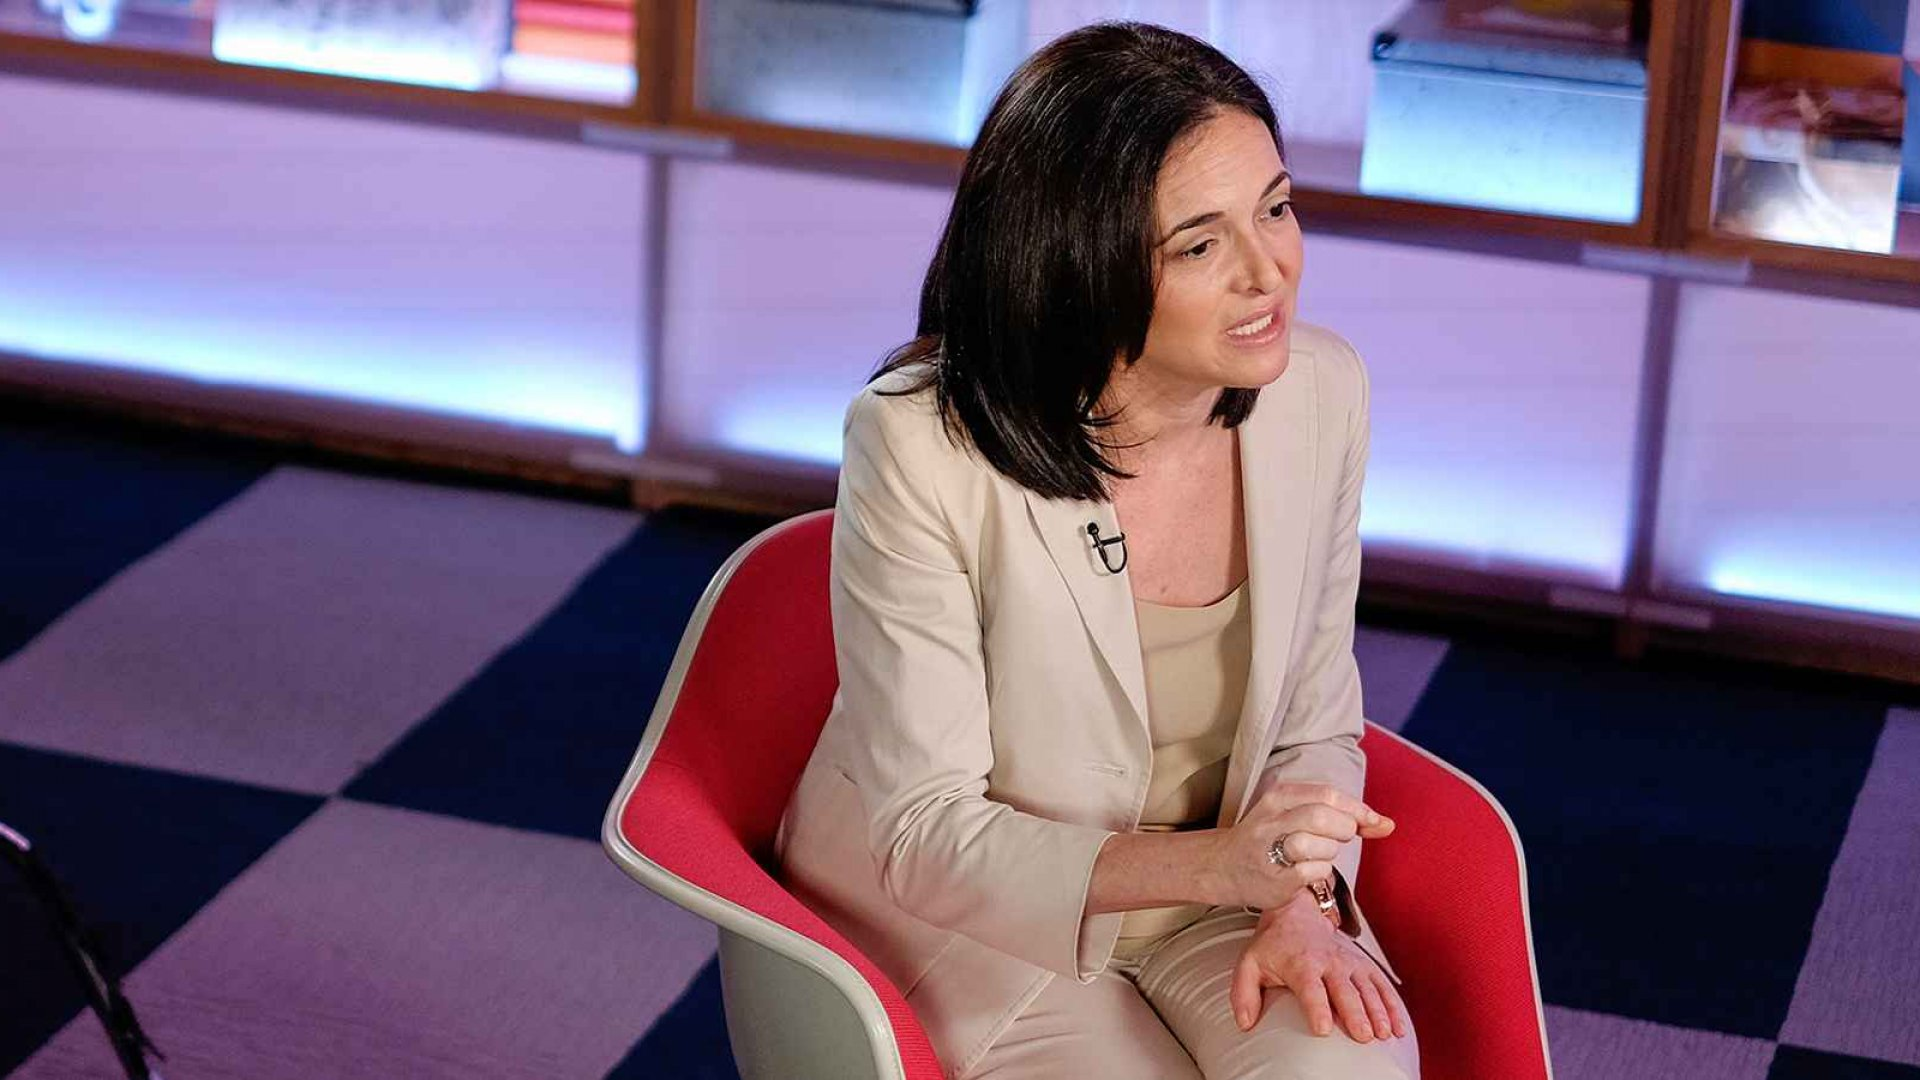 Sheryl Sandberg Just Gave Some Brilliant Career Advice. Here It Is in 2 Words